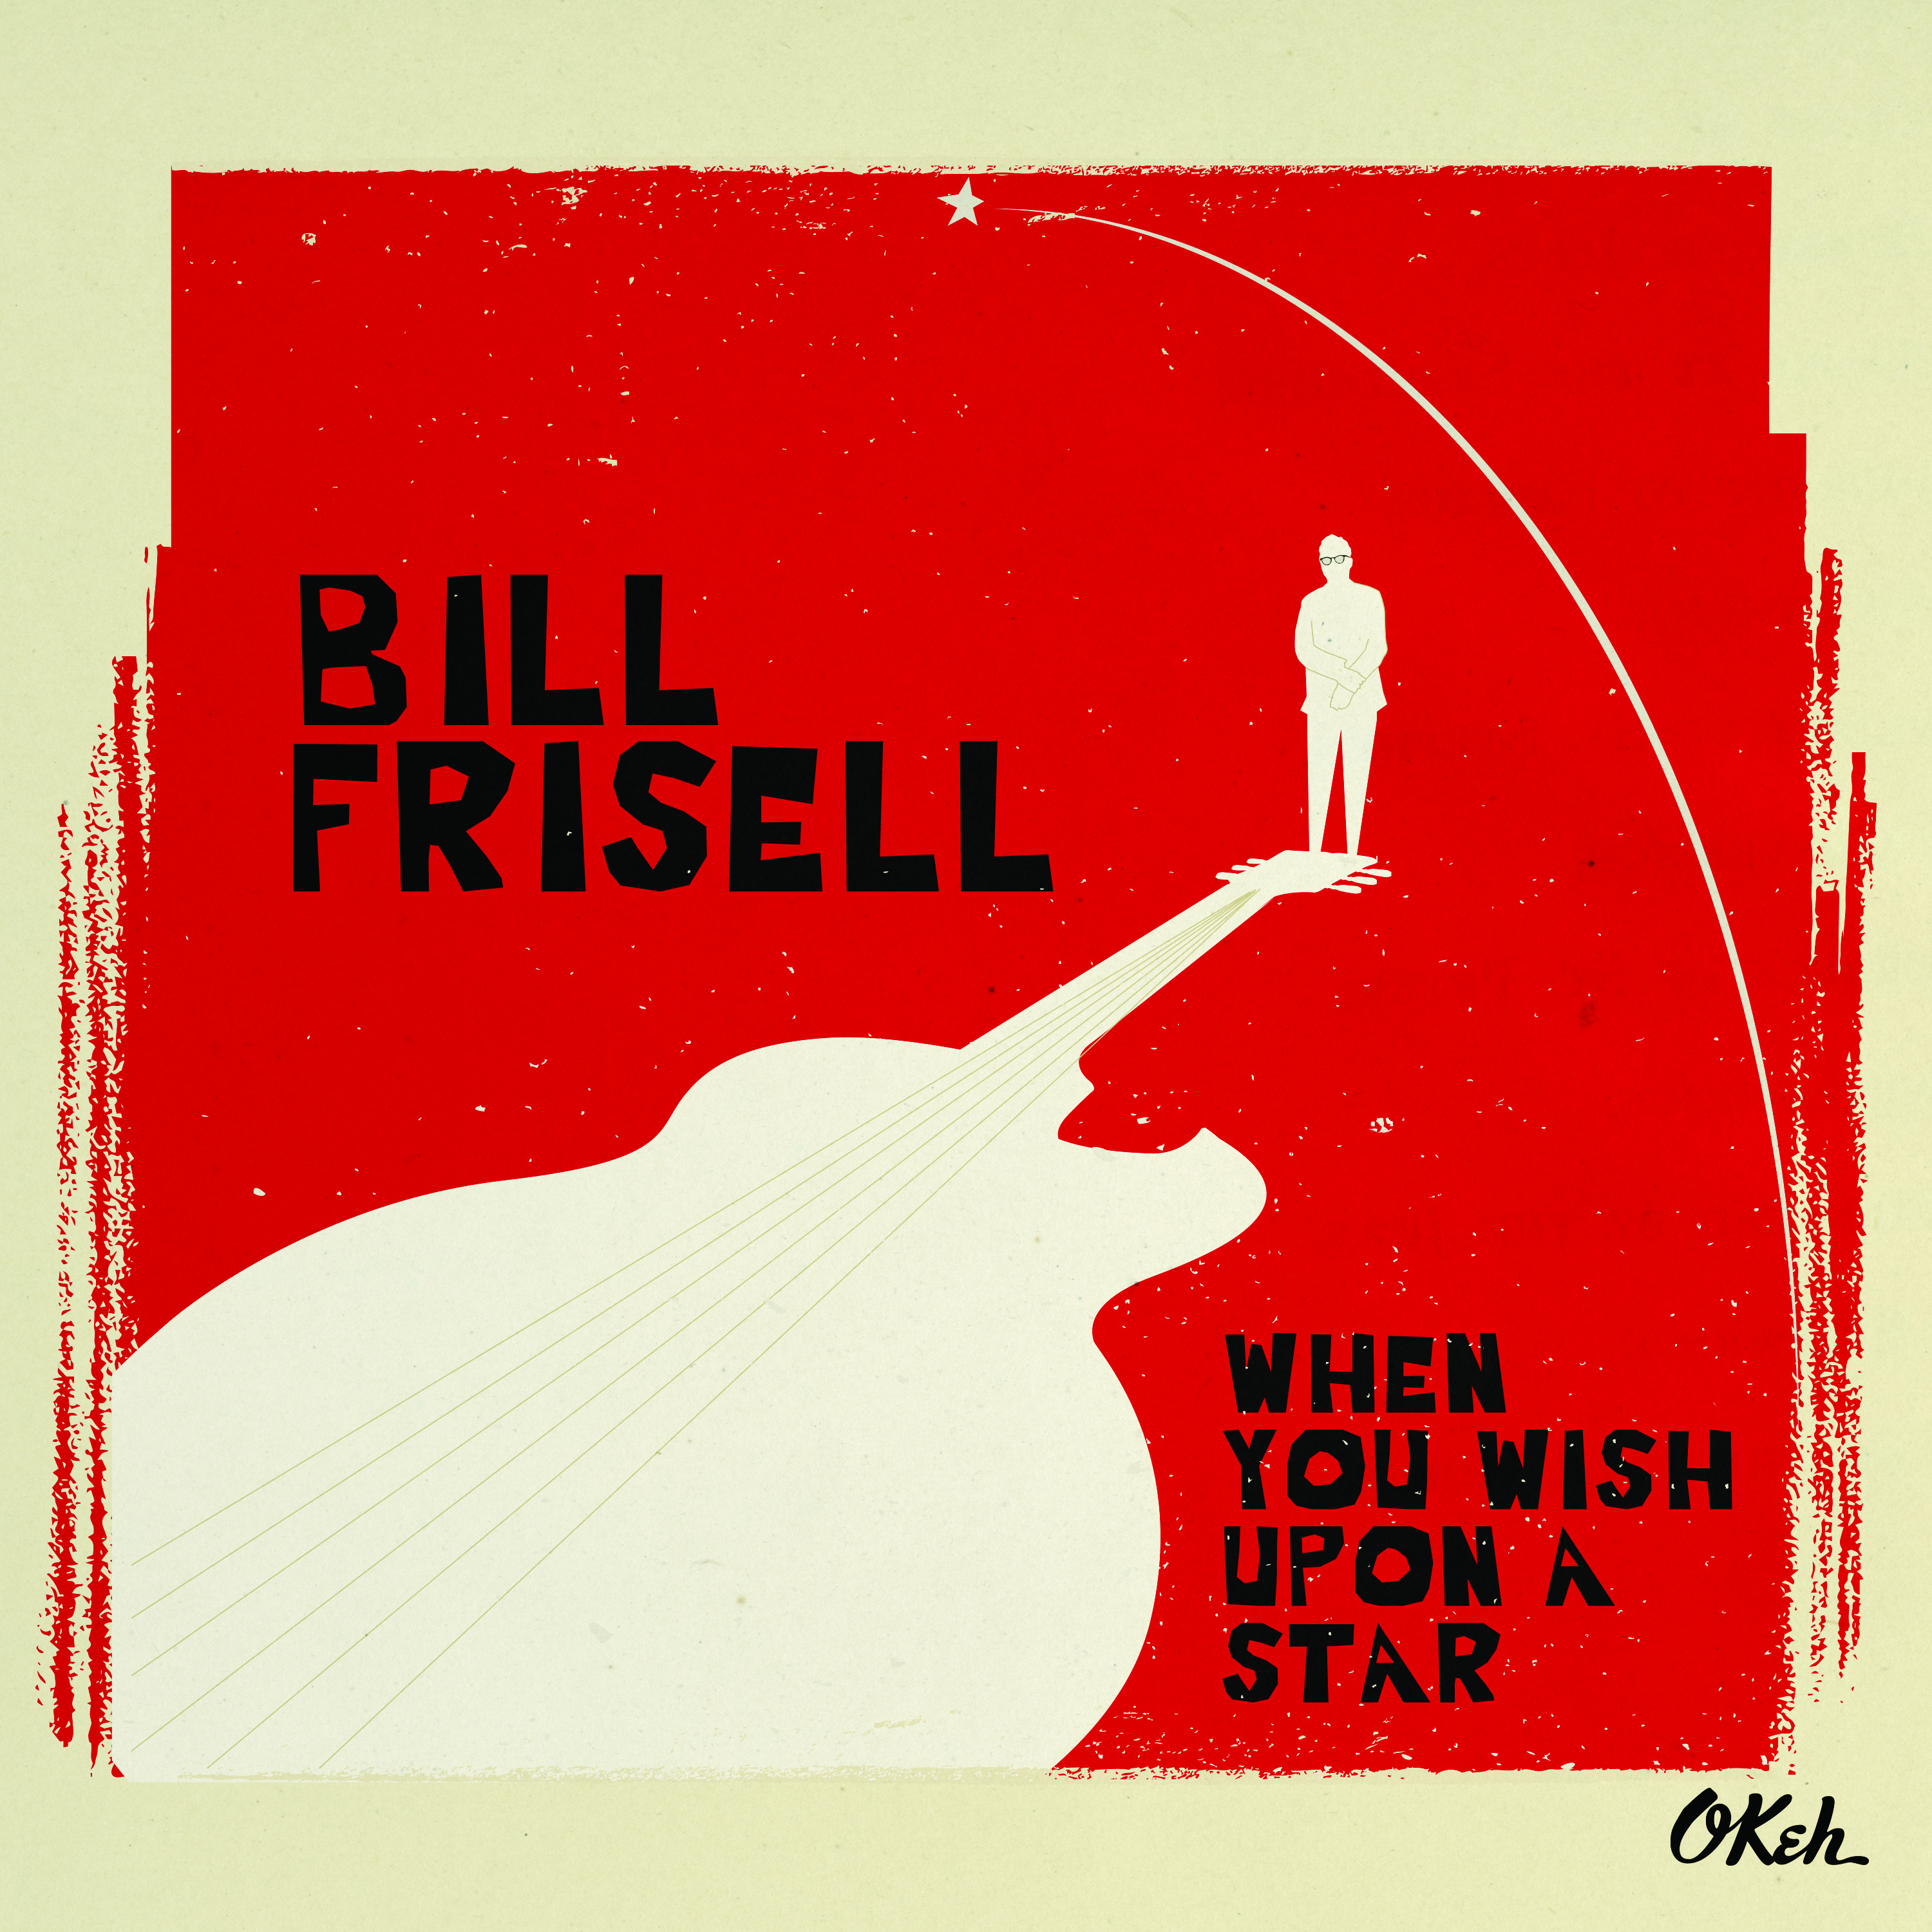 Bill Frisell's new album 'When You Wish Upon a Star' out 5th February!